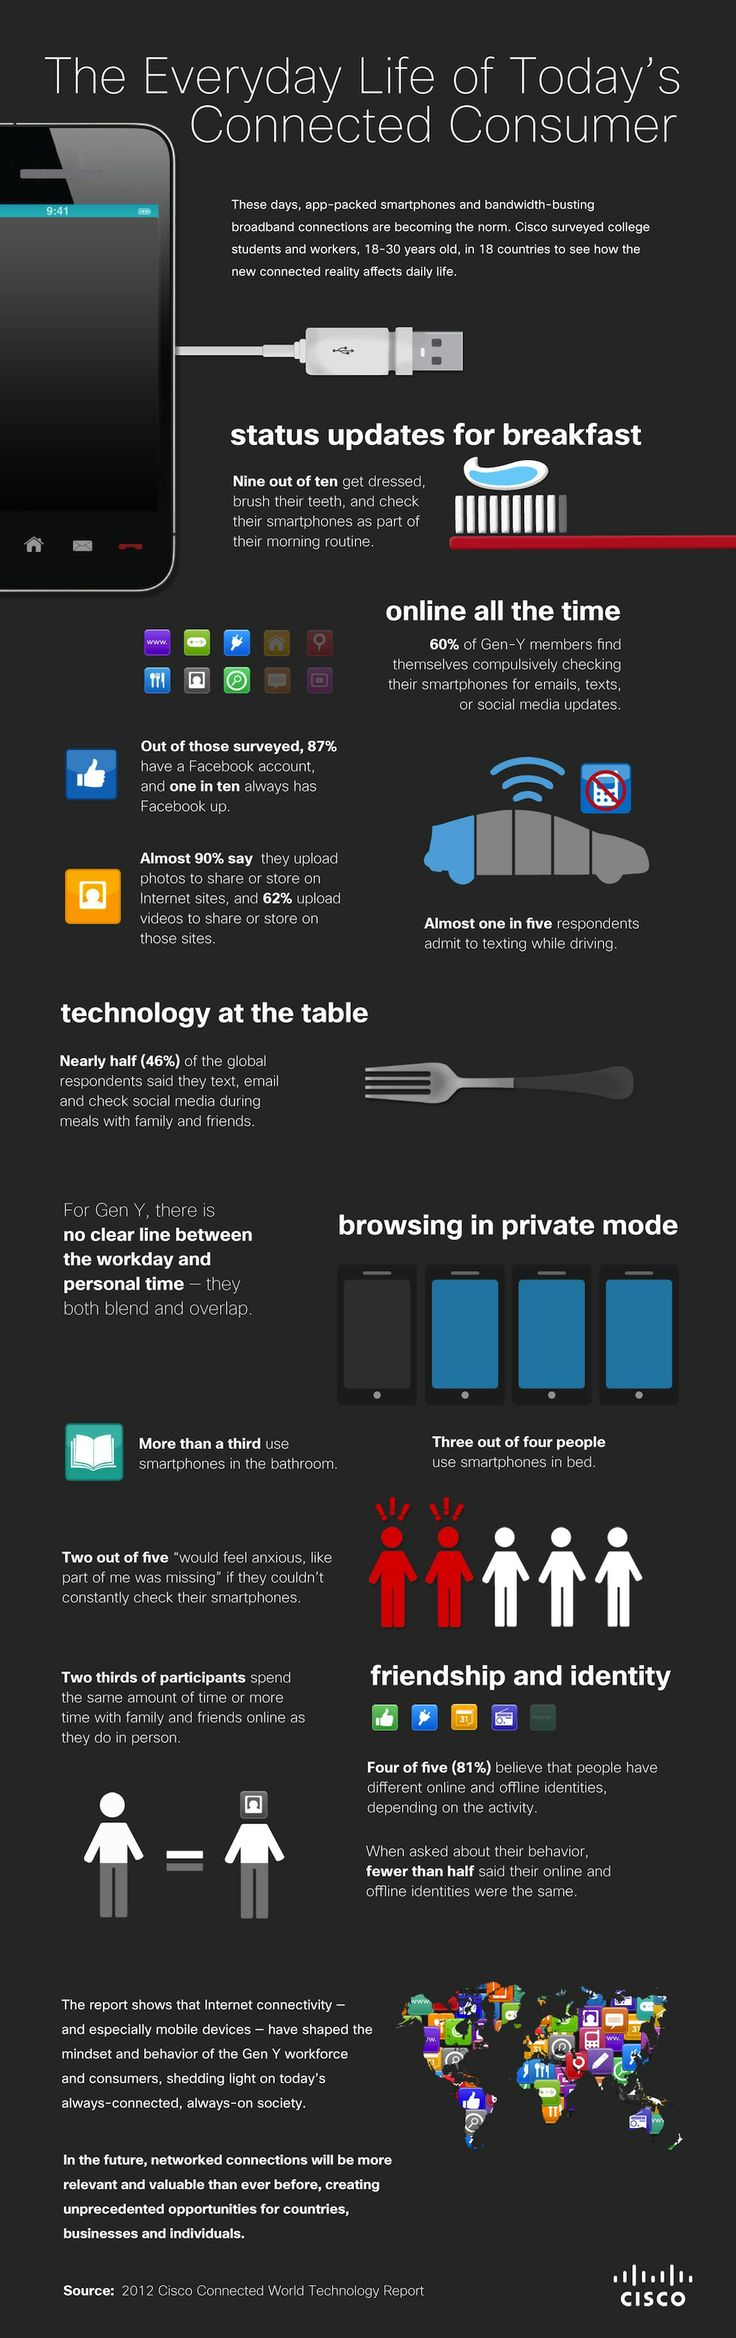 Smartphones And Social Media - The Everyday Life Of Today's Connected Consumer [INFOGRAPHIC] (via AlltTwitter 12-13-2012)